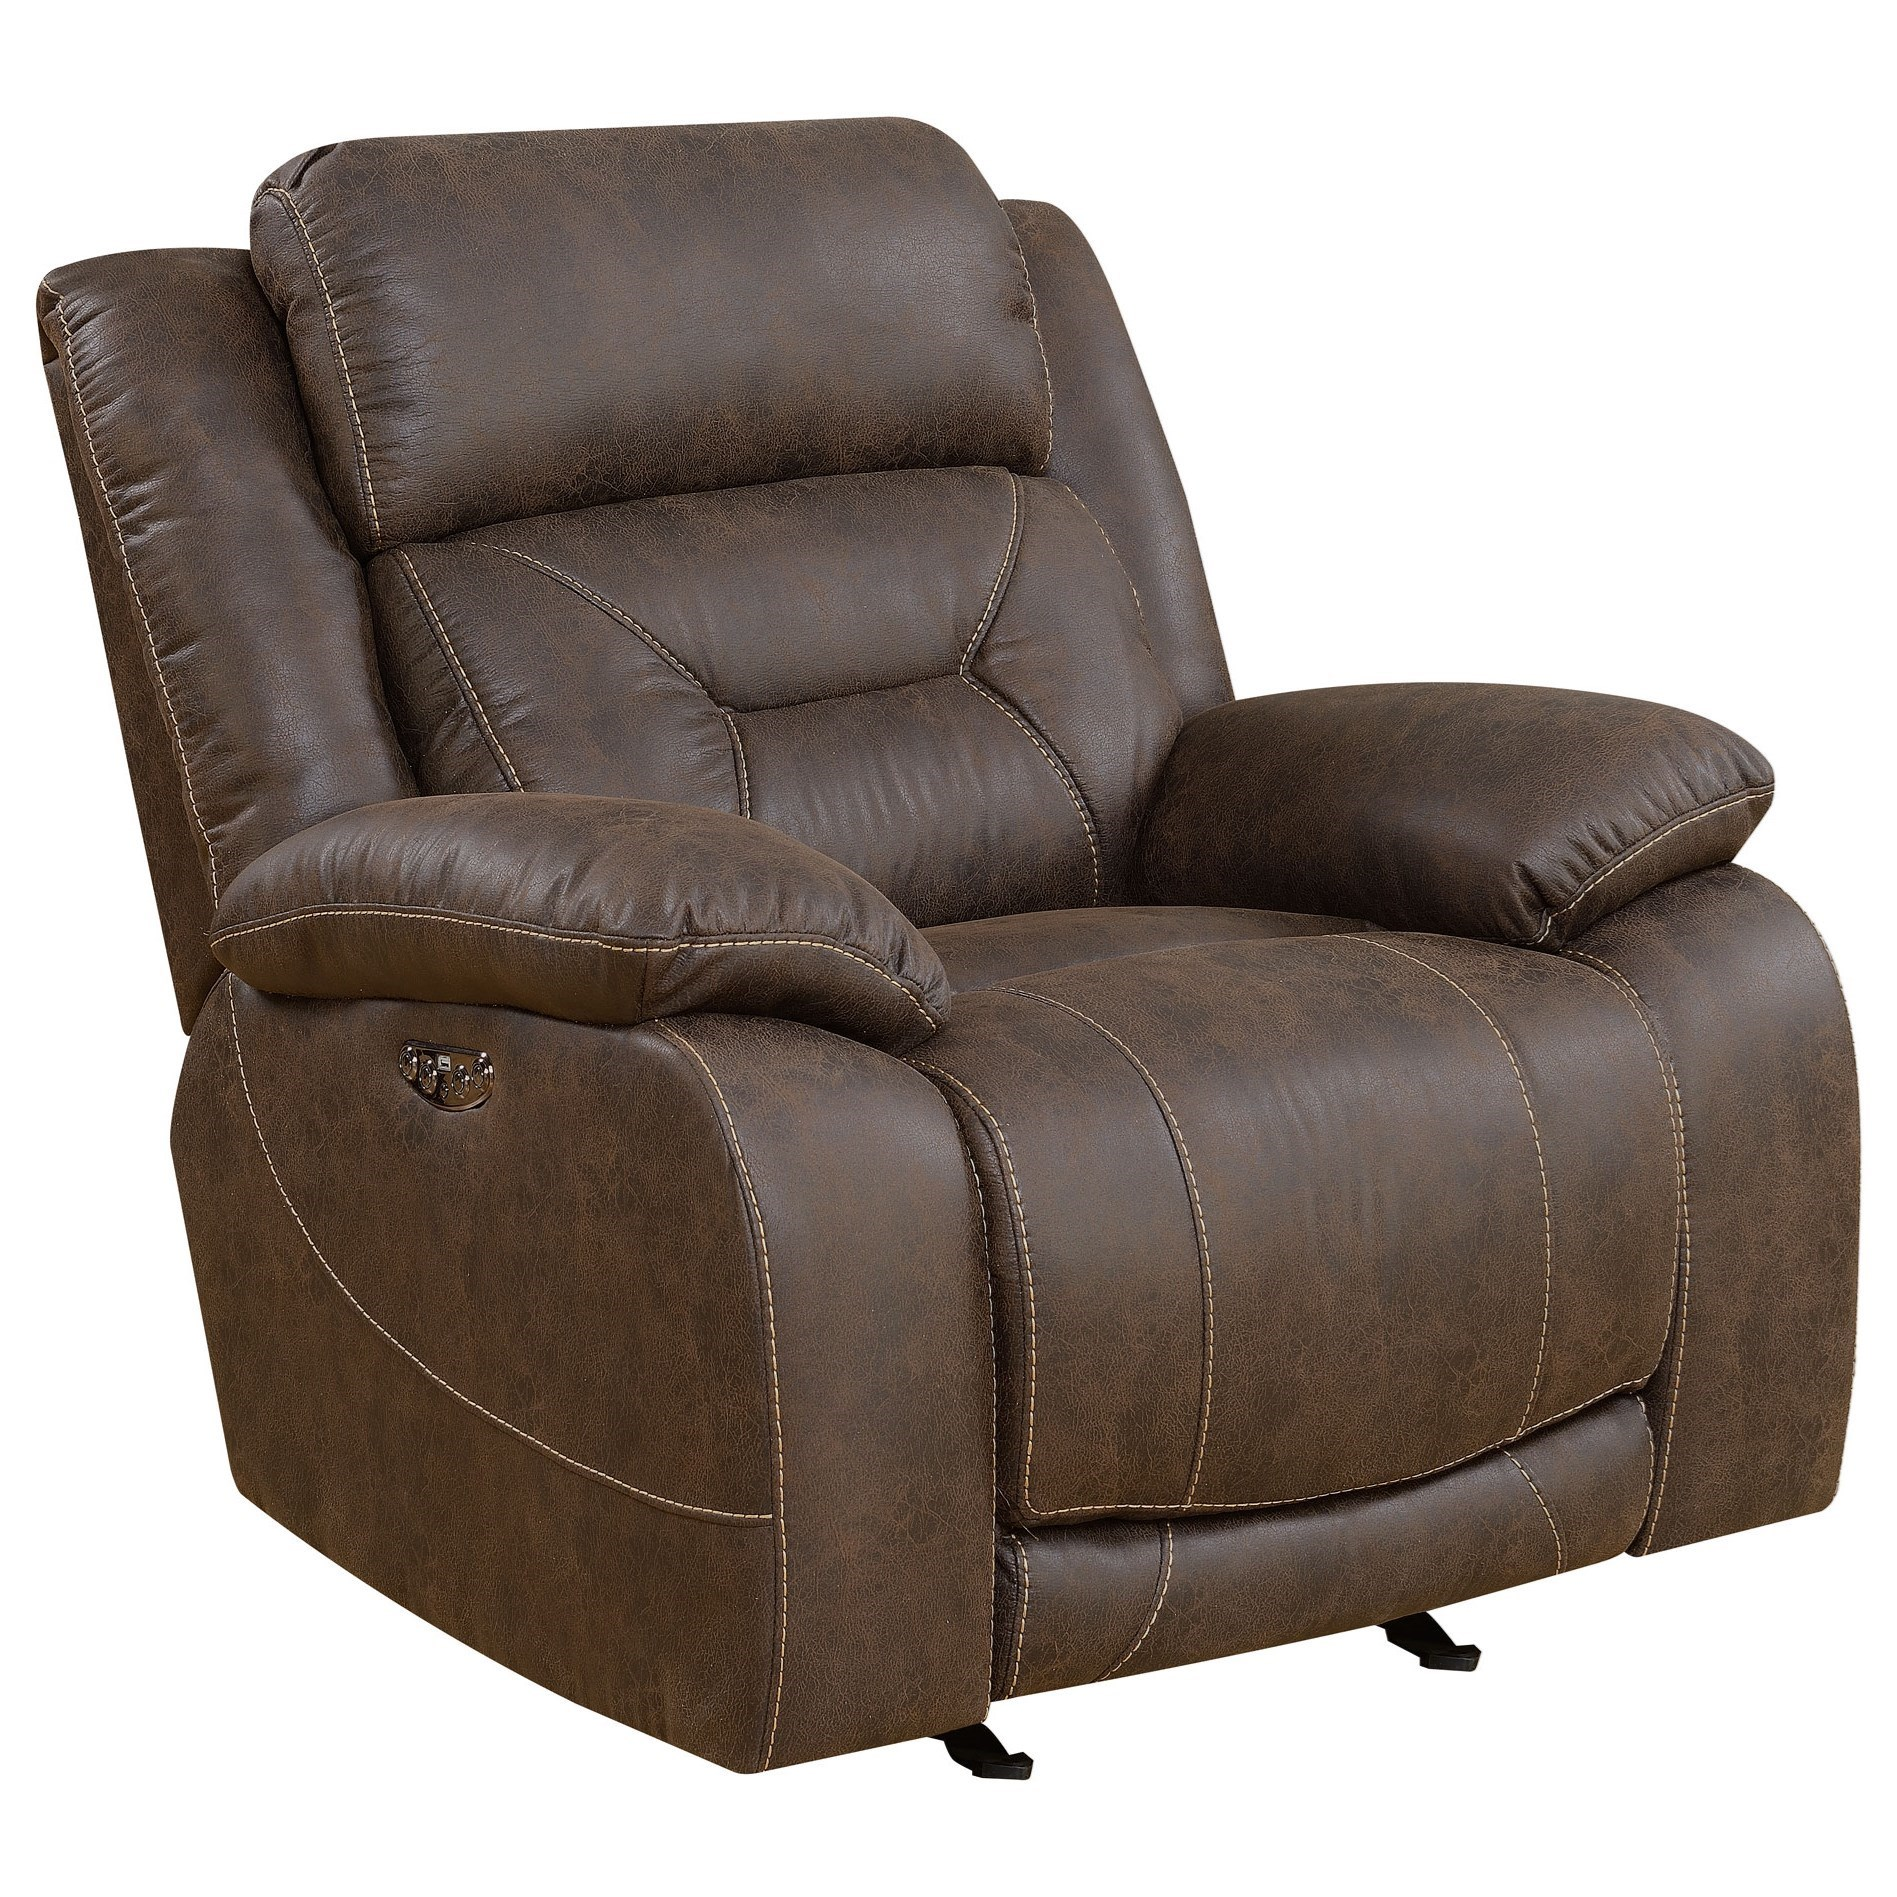 Aria Power Recliner by Steve Silver at Northeast Factory Direct